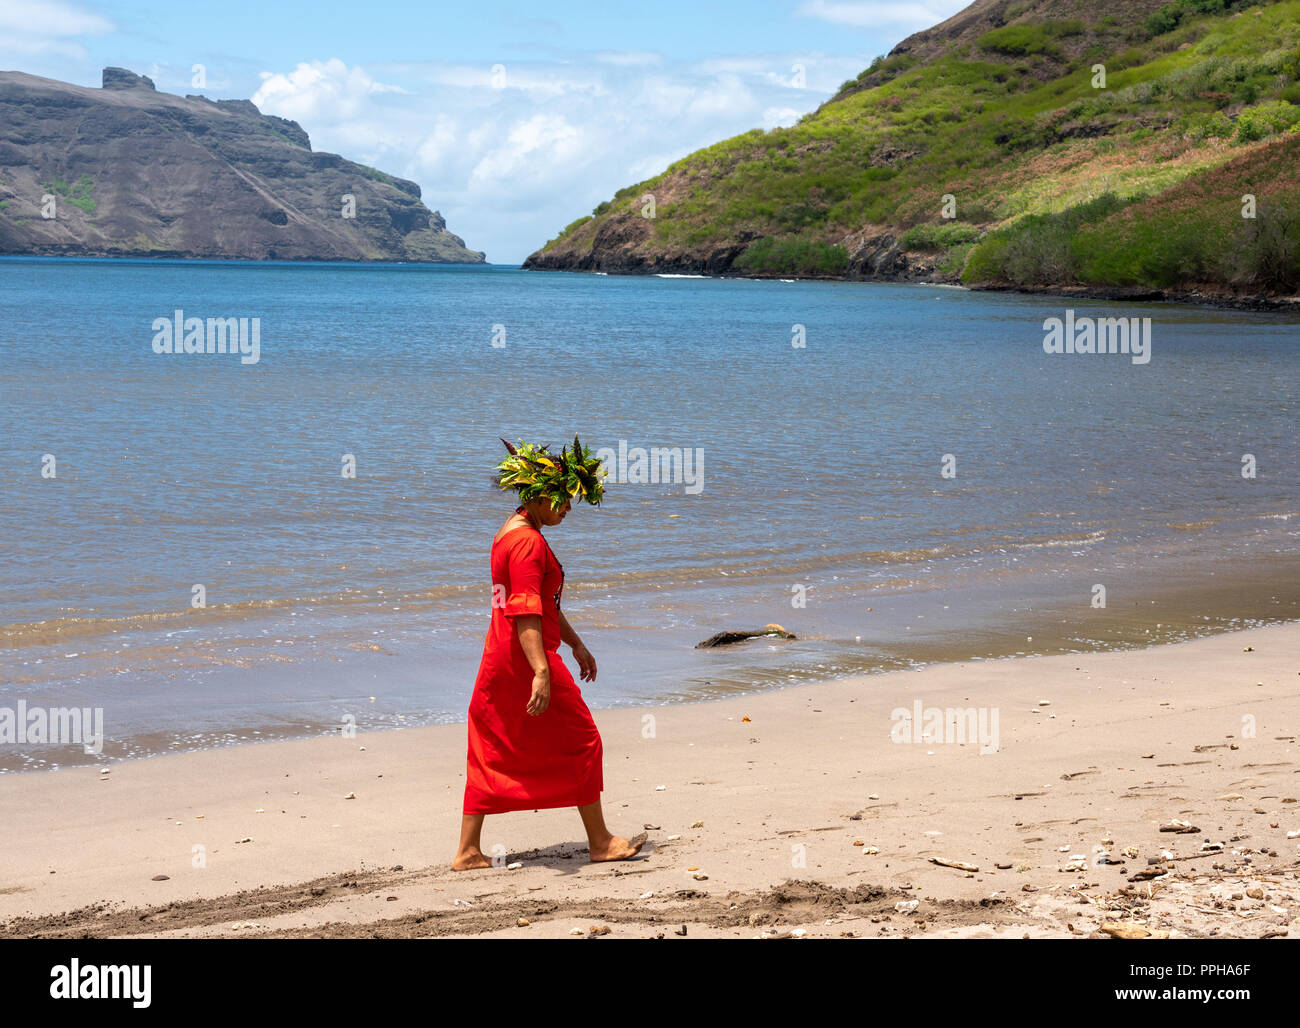 Nuku Hiva, French Polynesia -- March 23, 2018. Native tour guide walks on a beach in Nuku Hiva in the South Pacific. - Stock Image